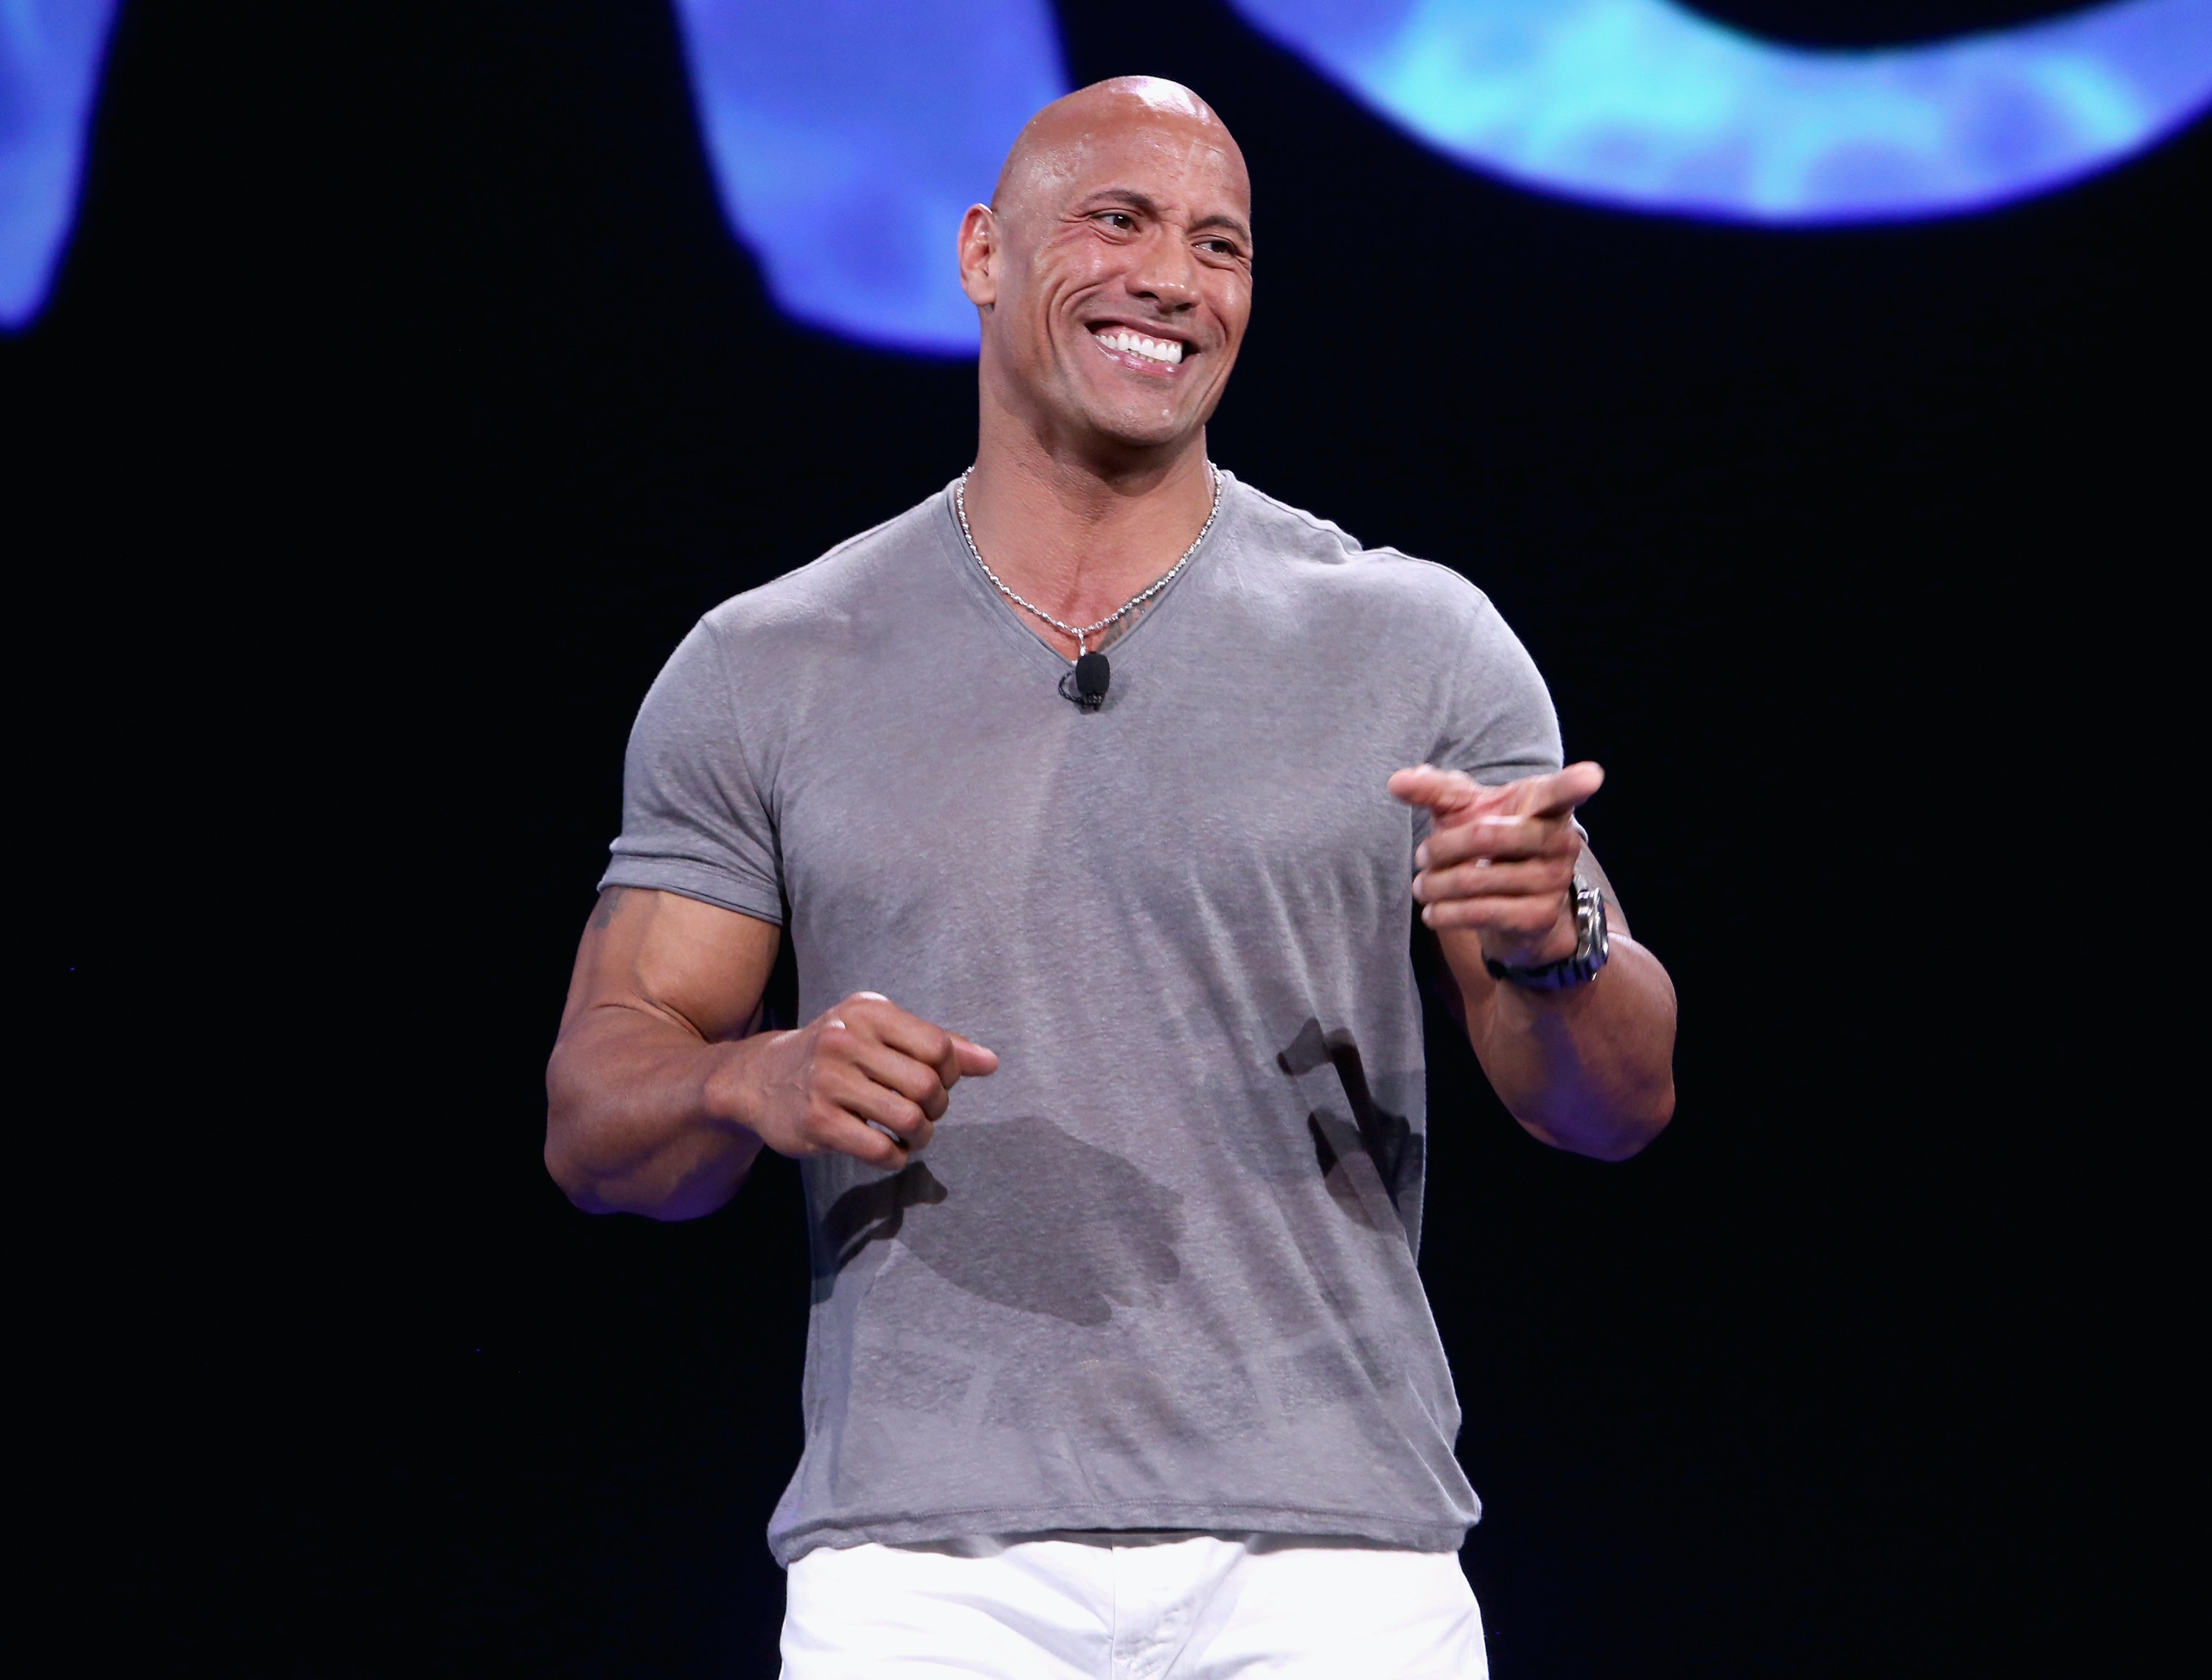 Dwayne 'The Rock' Johnson revealed as People's Sexiest Man Alive 2016